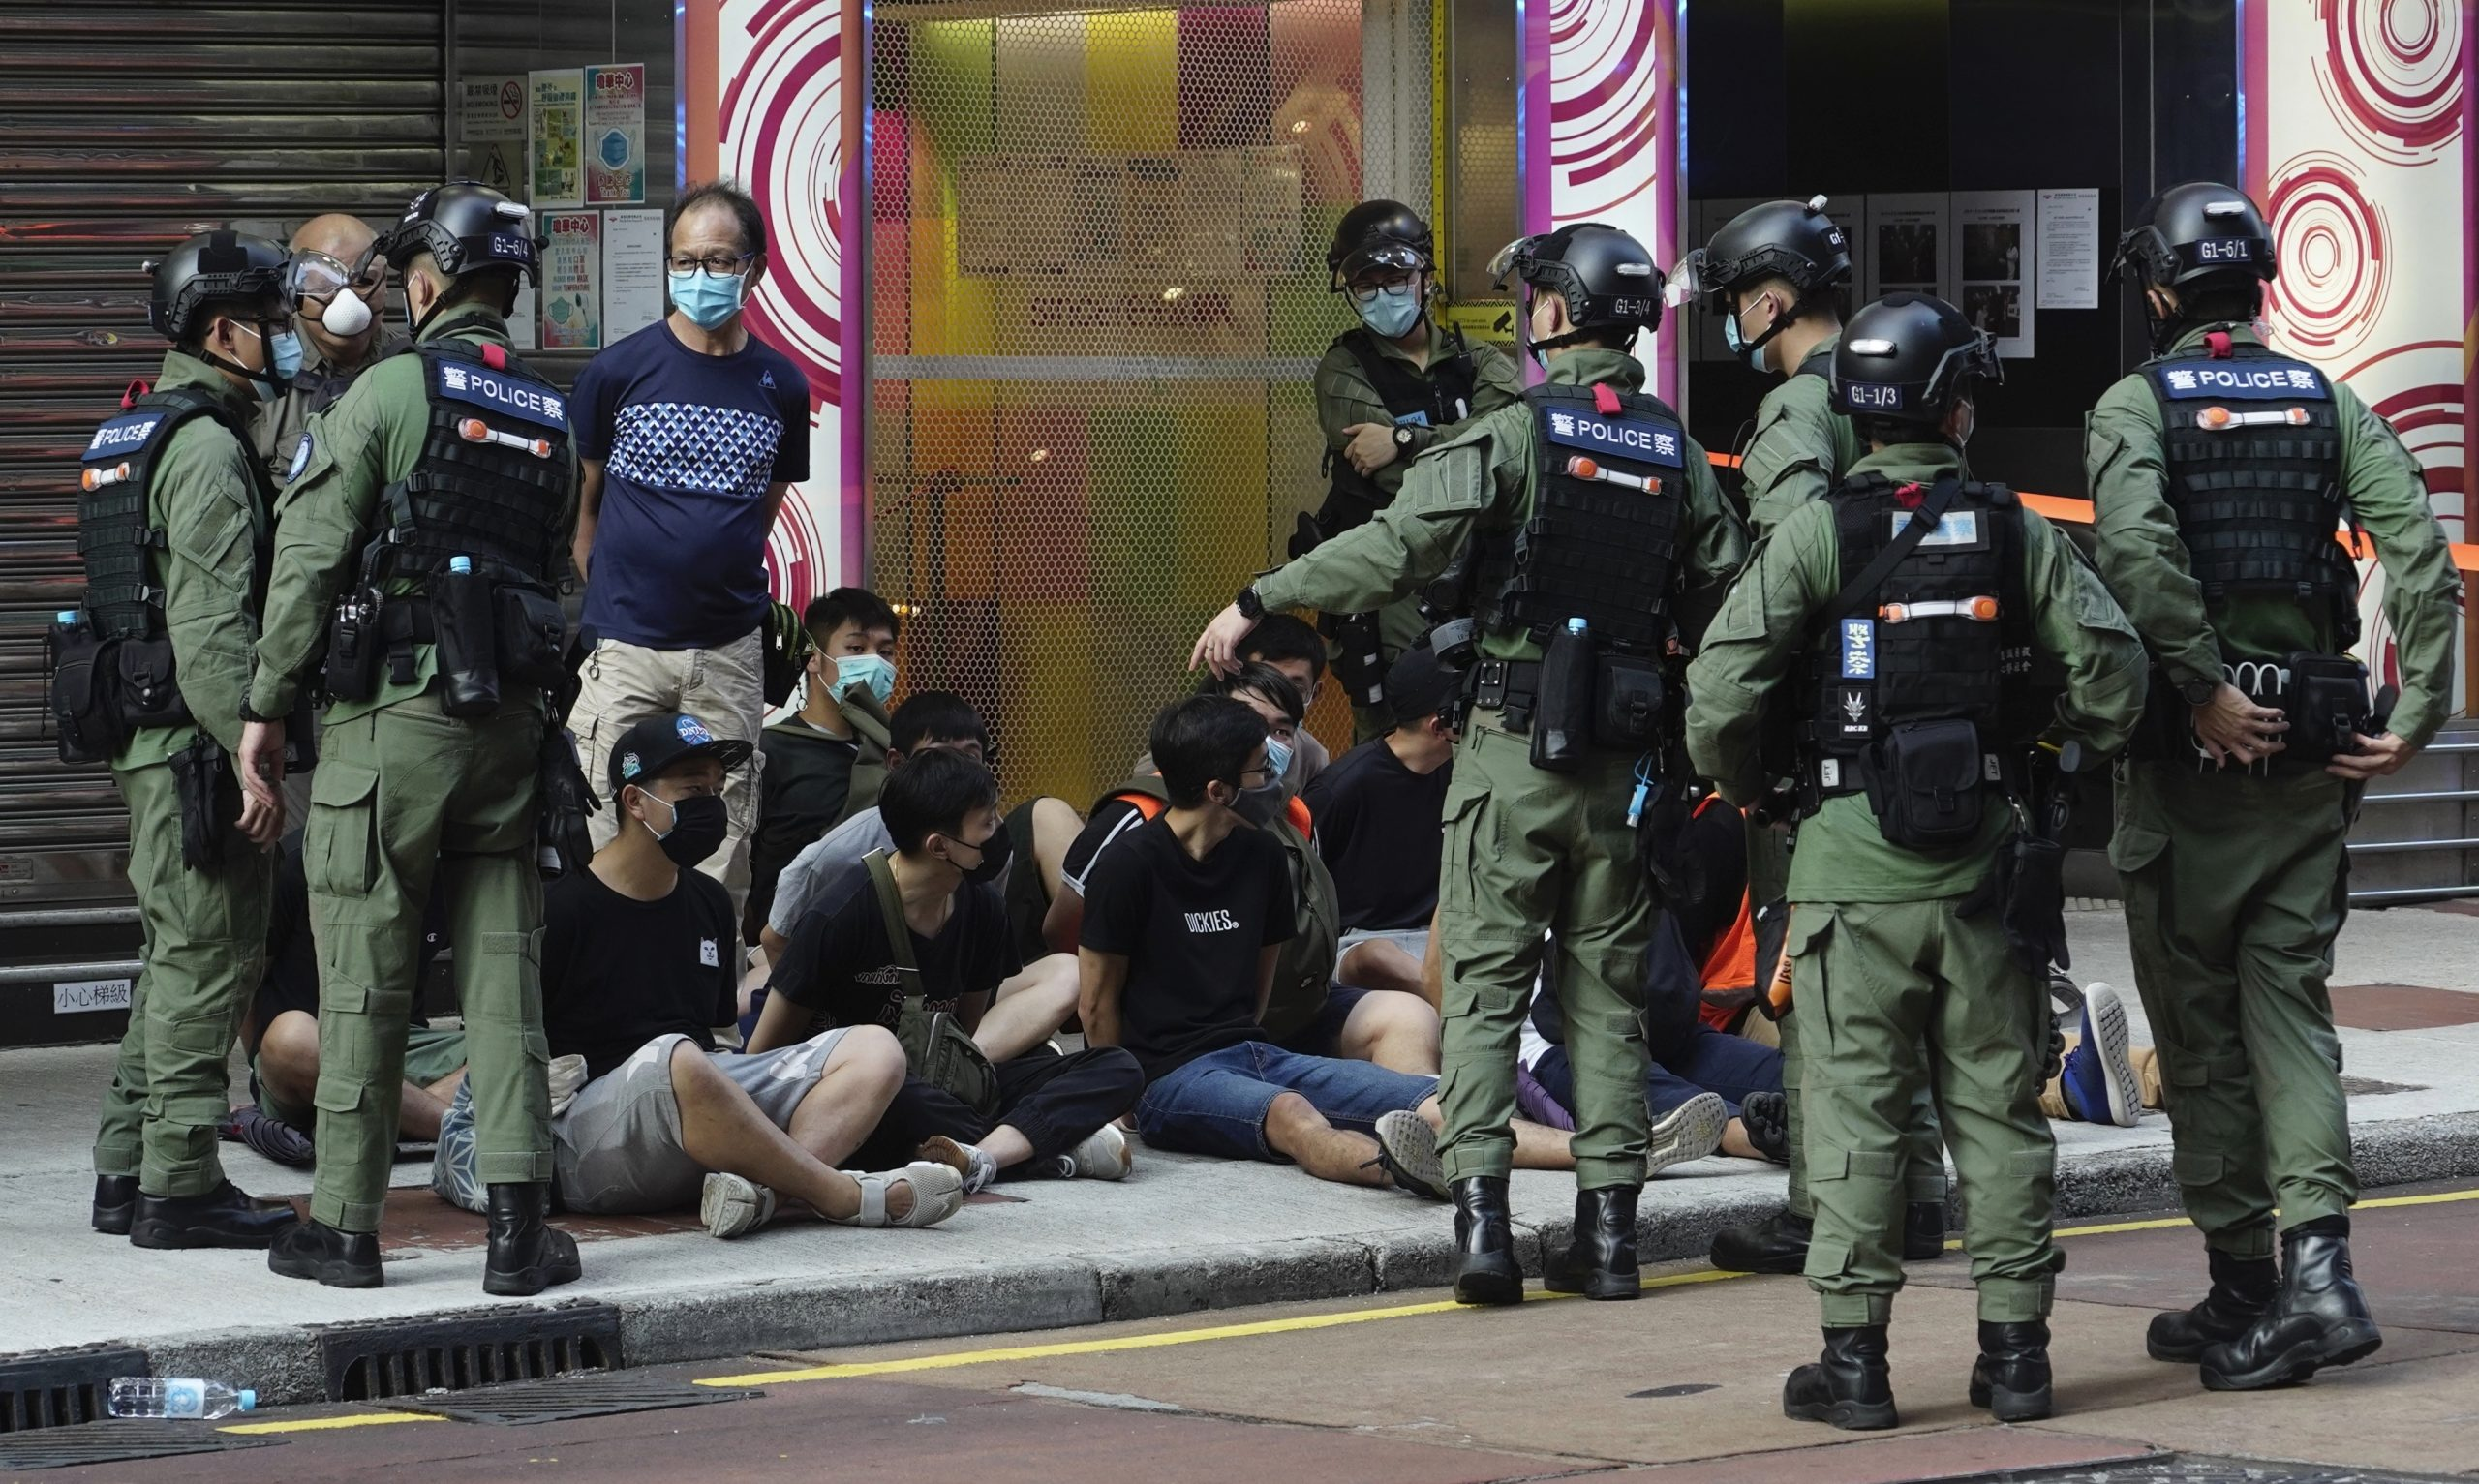 Hong Kong police arrested 90 protesters during the demonstrations delayed local elections